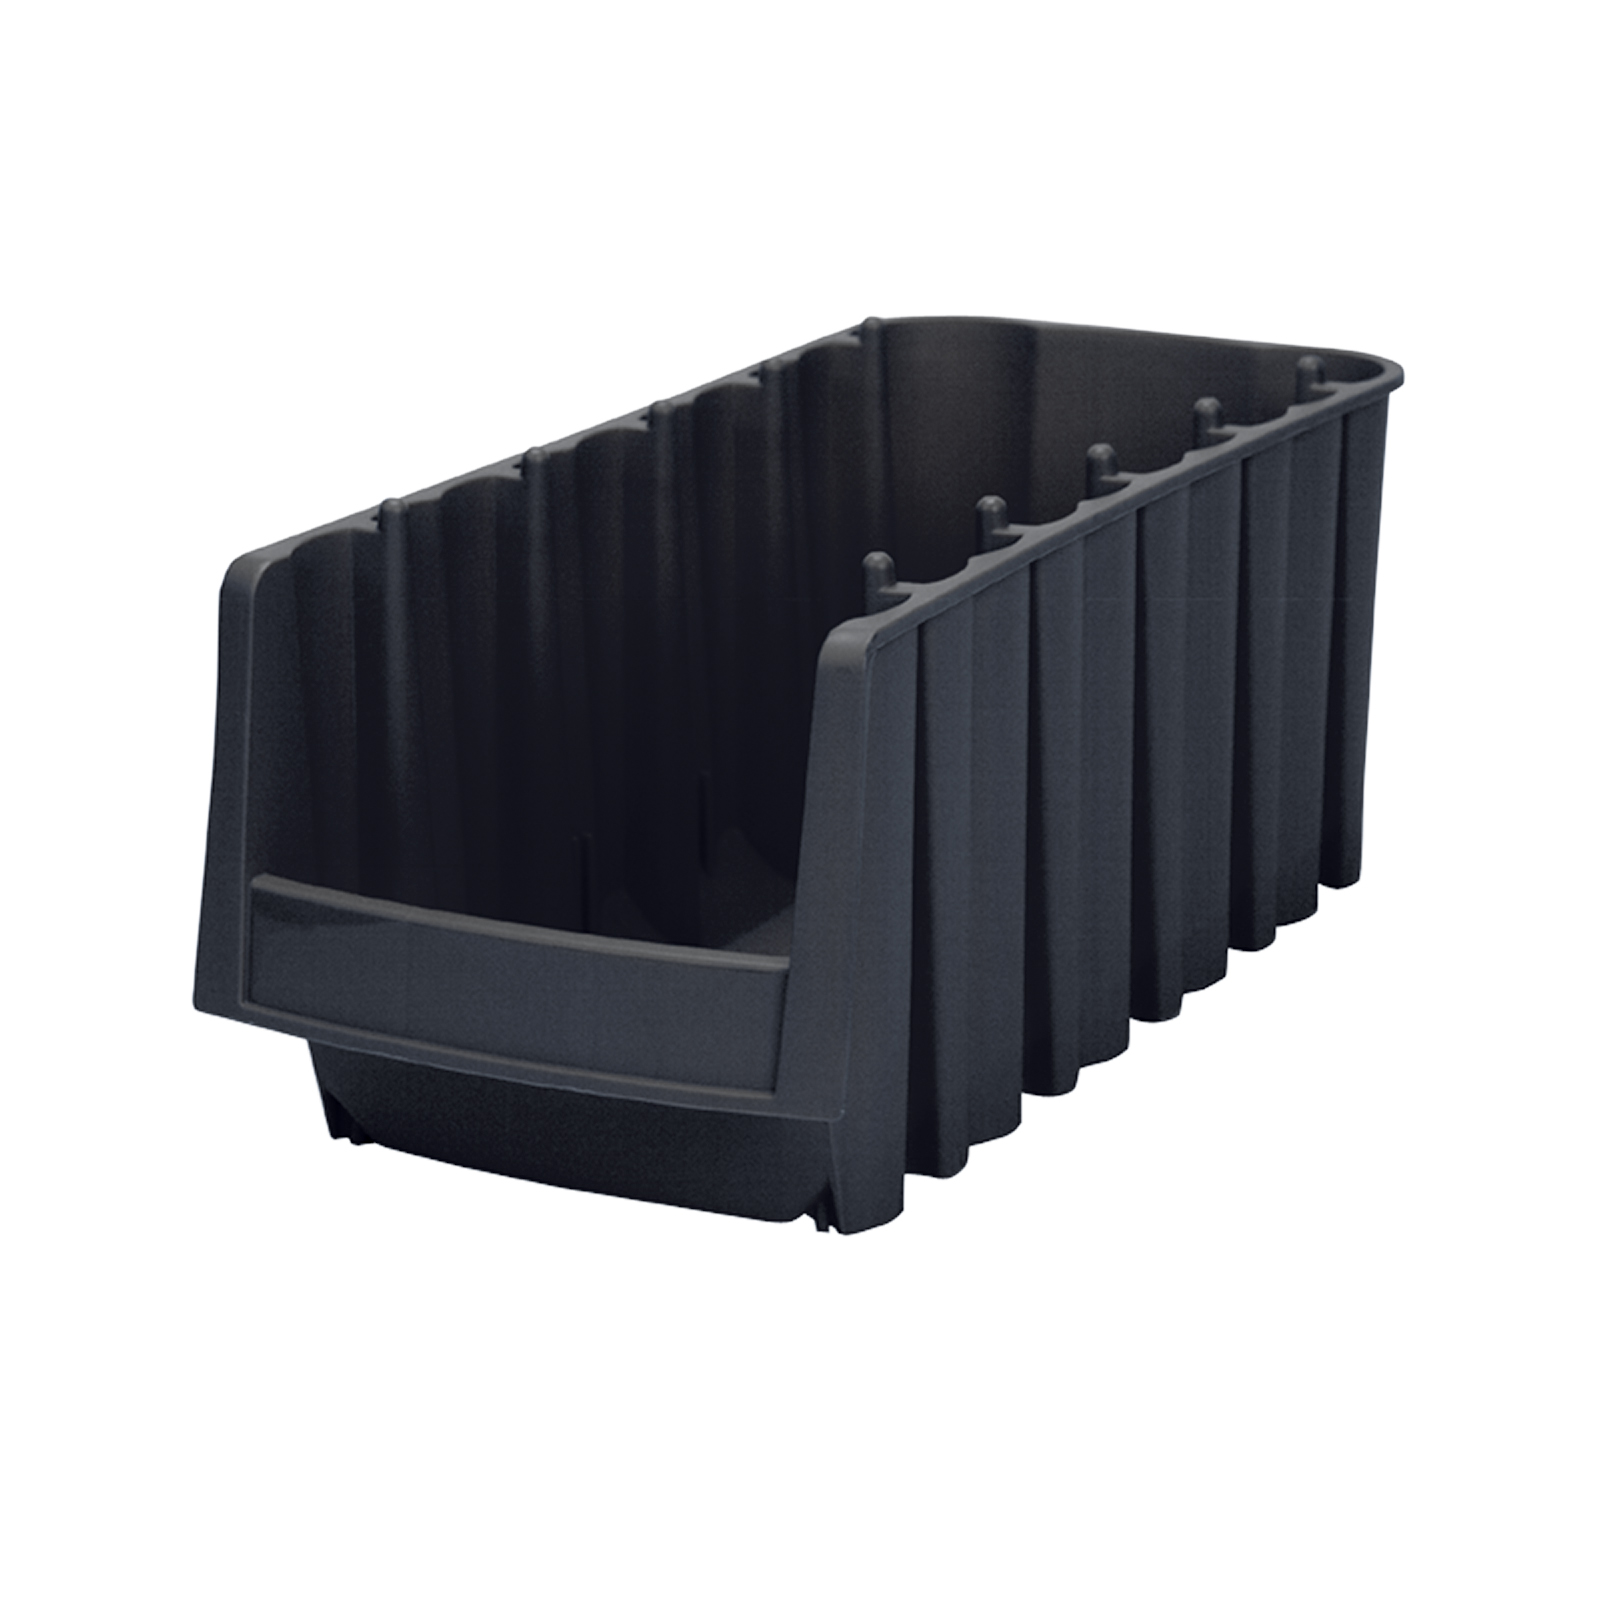 Economy Shelf Bin 17-7/8 x 8-3/8 x 7, Black (30778BLACK).  This item sold in carton quantities of 8.